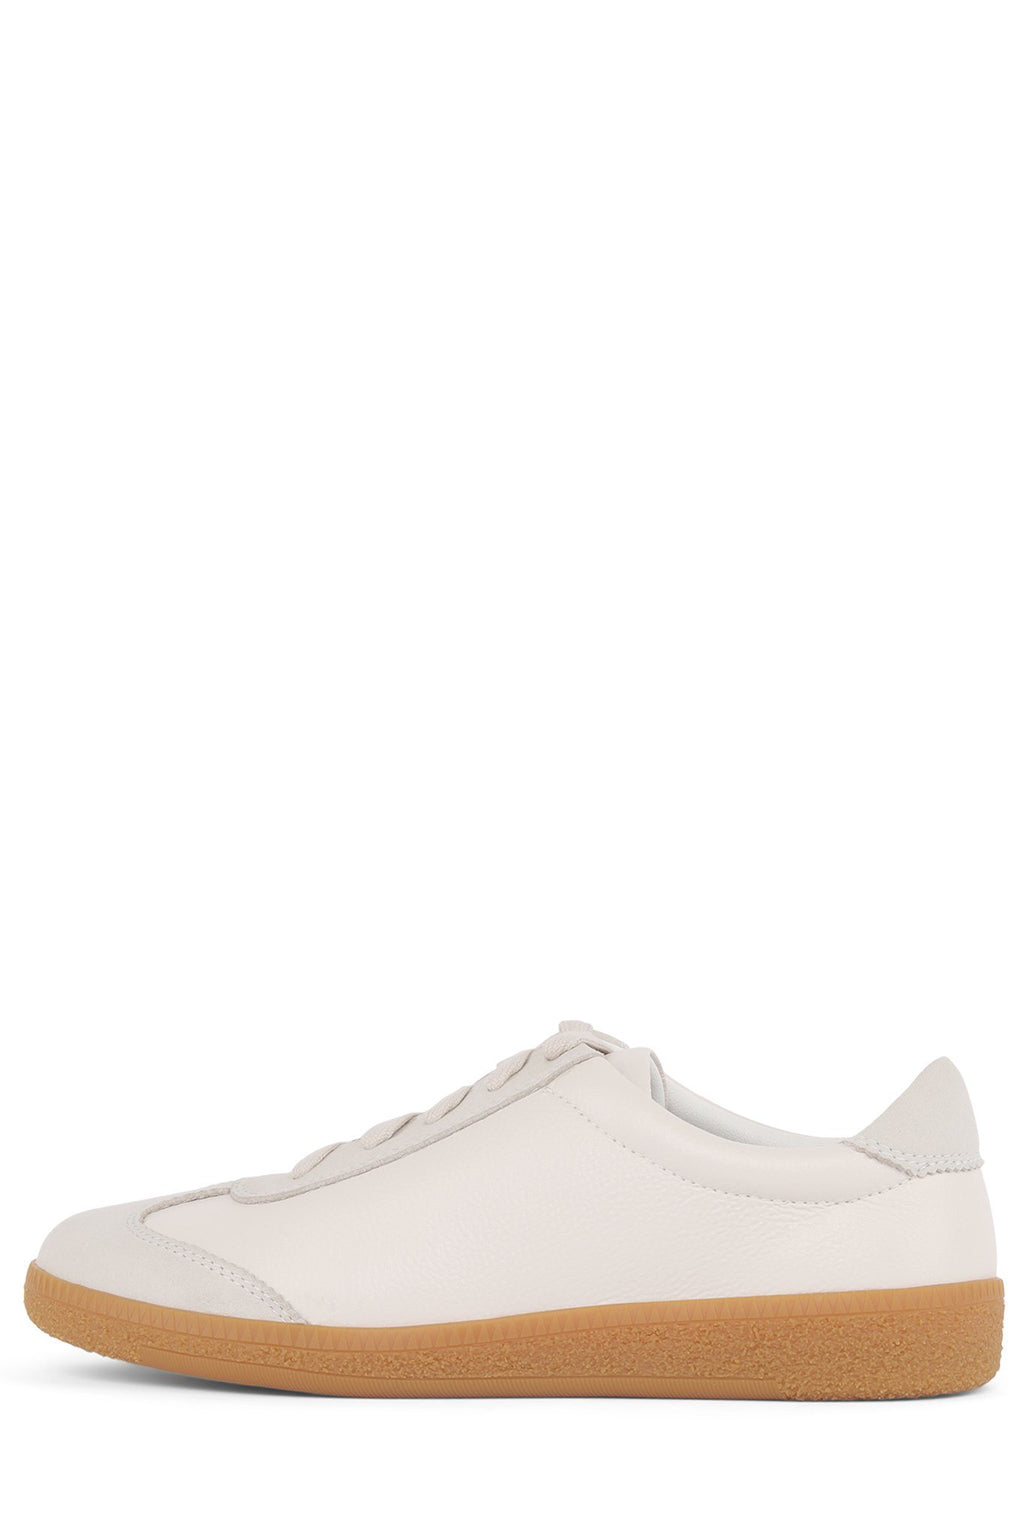 SKATER Sneaker Jeffrey Campbell White Suede Off White 7